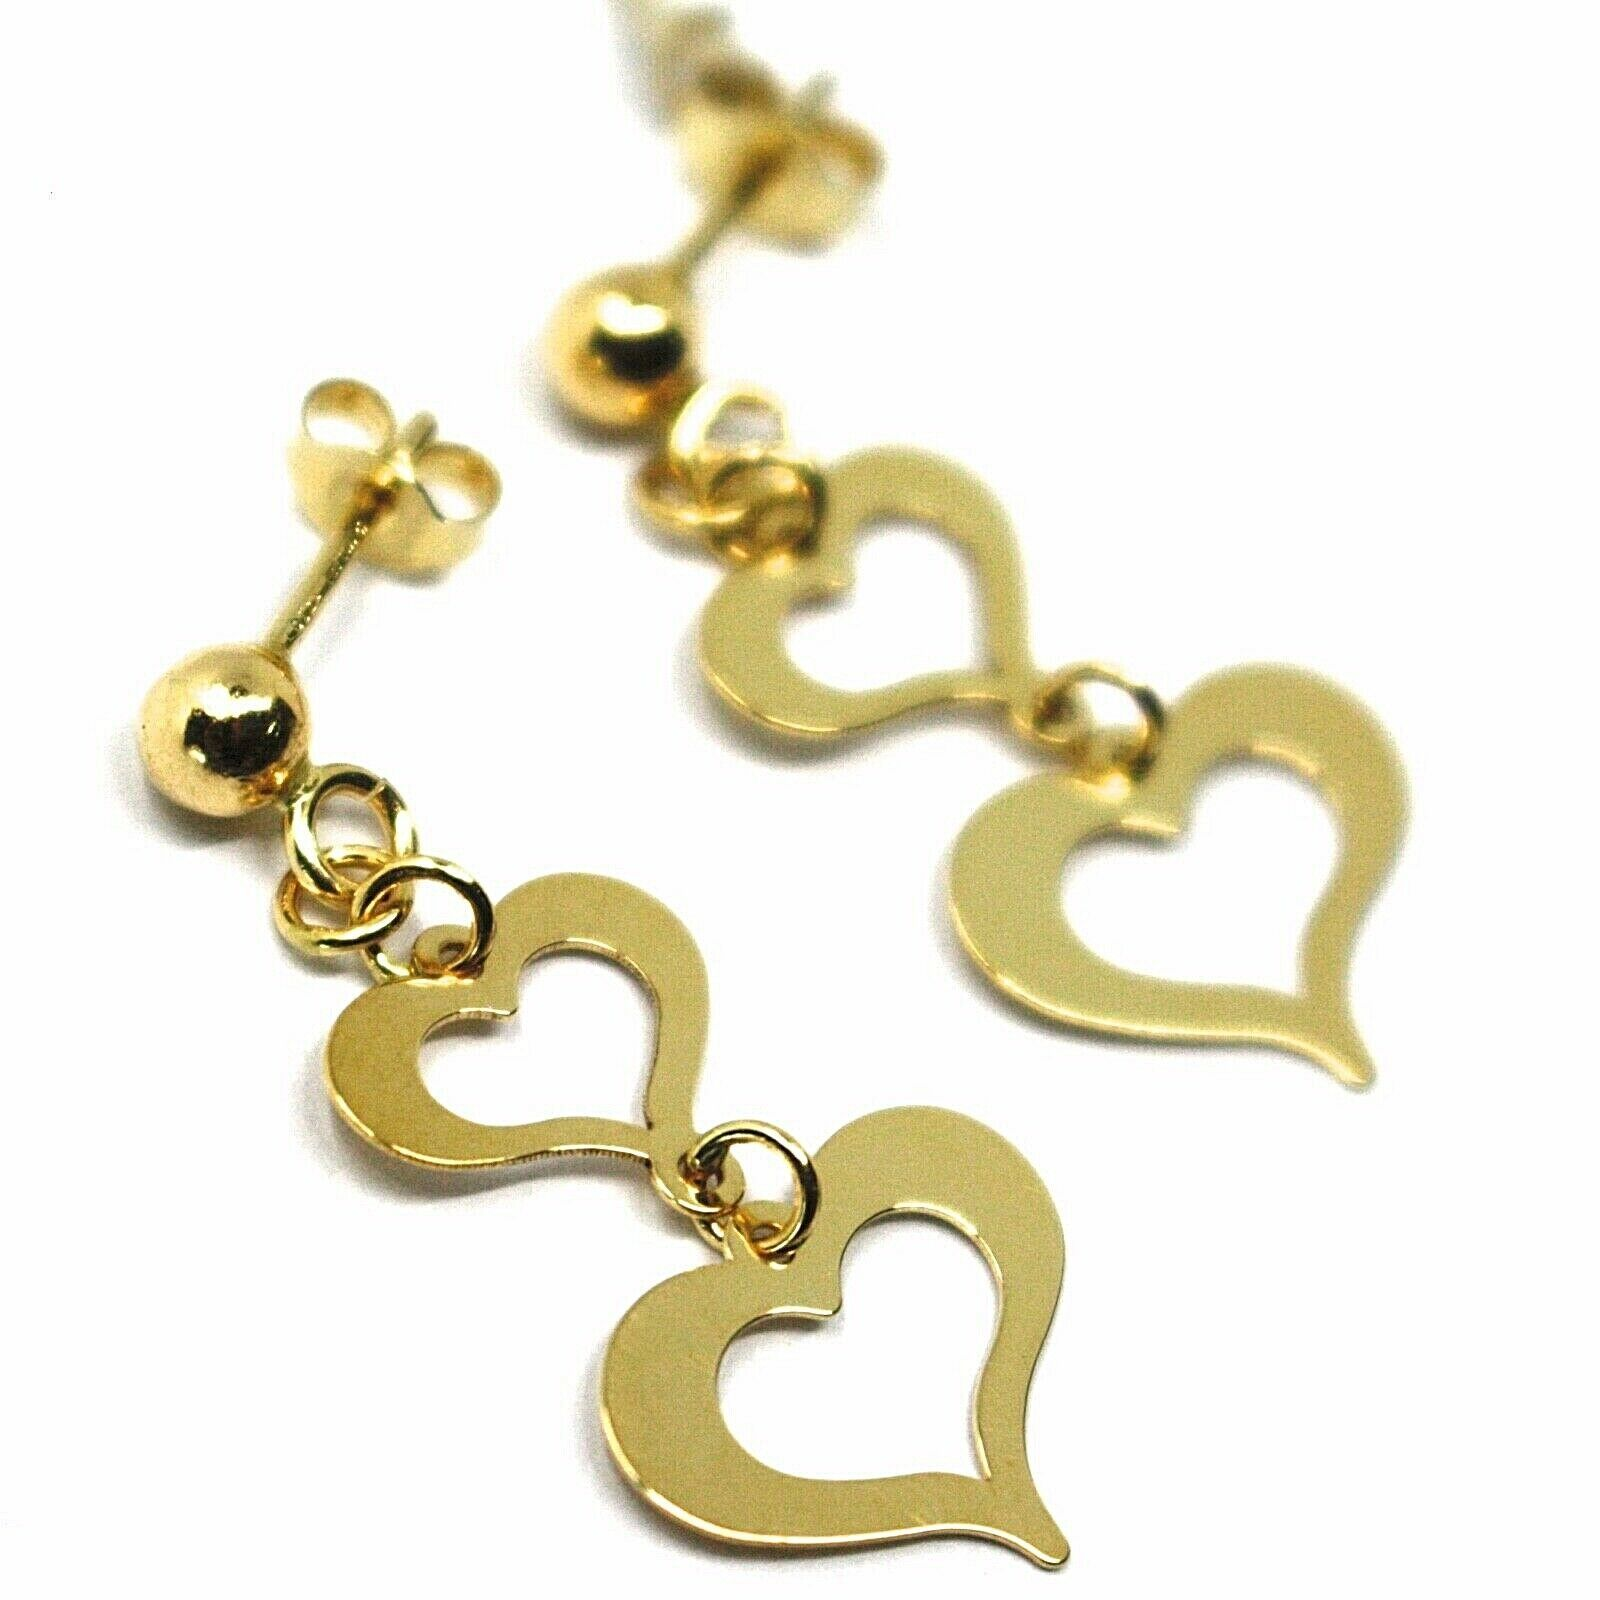 18K YELLOW GOLD PENDANT EARRINGS, DOUBLE FLAT HEARTS, 3cm, 1.2 INCHES